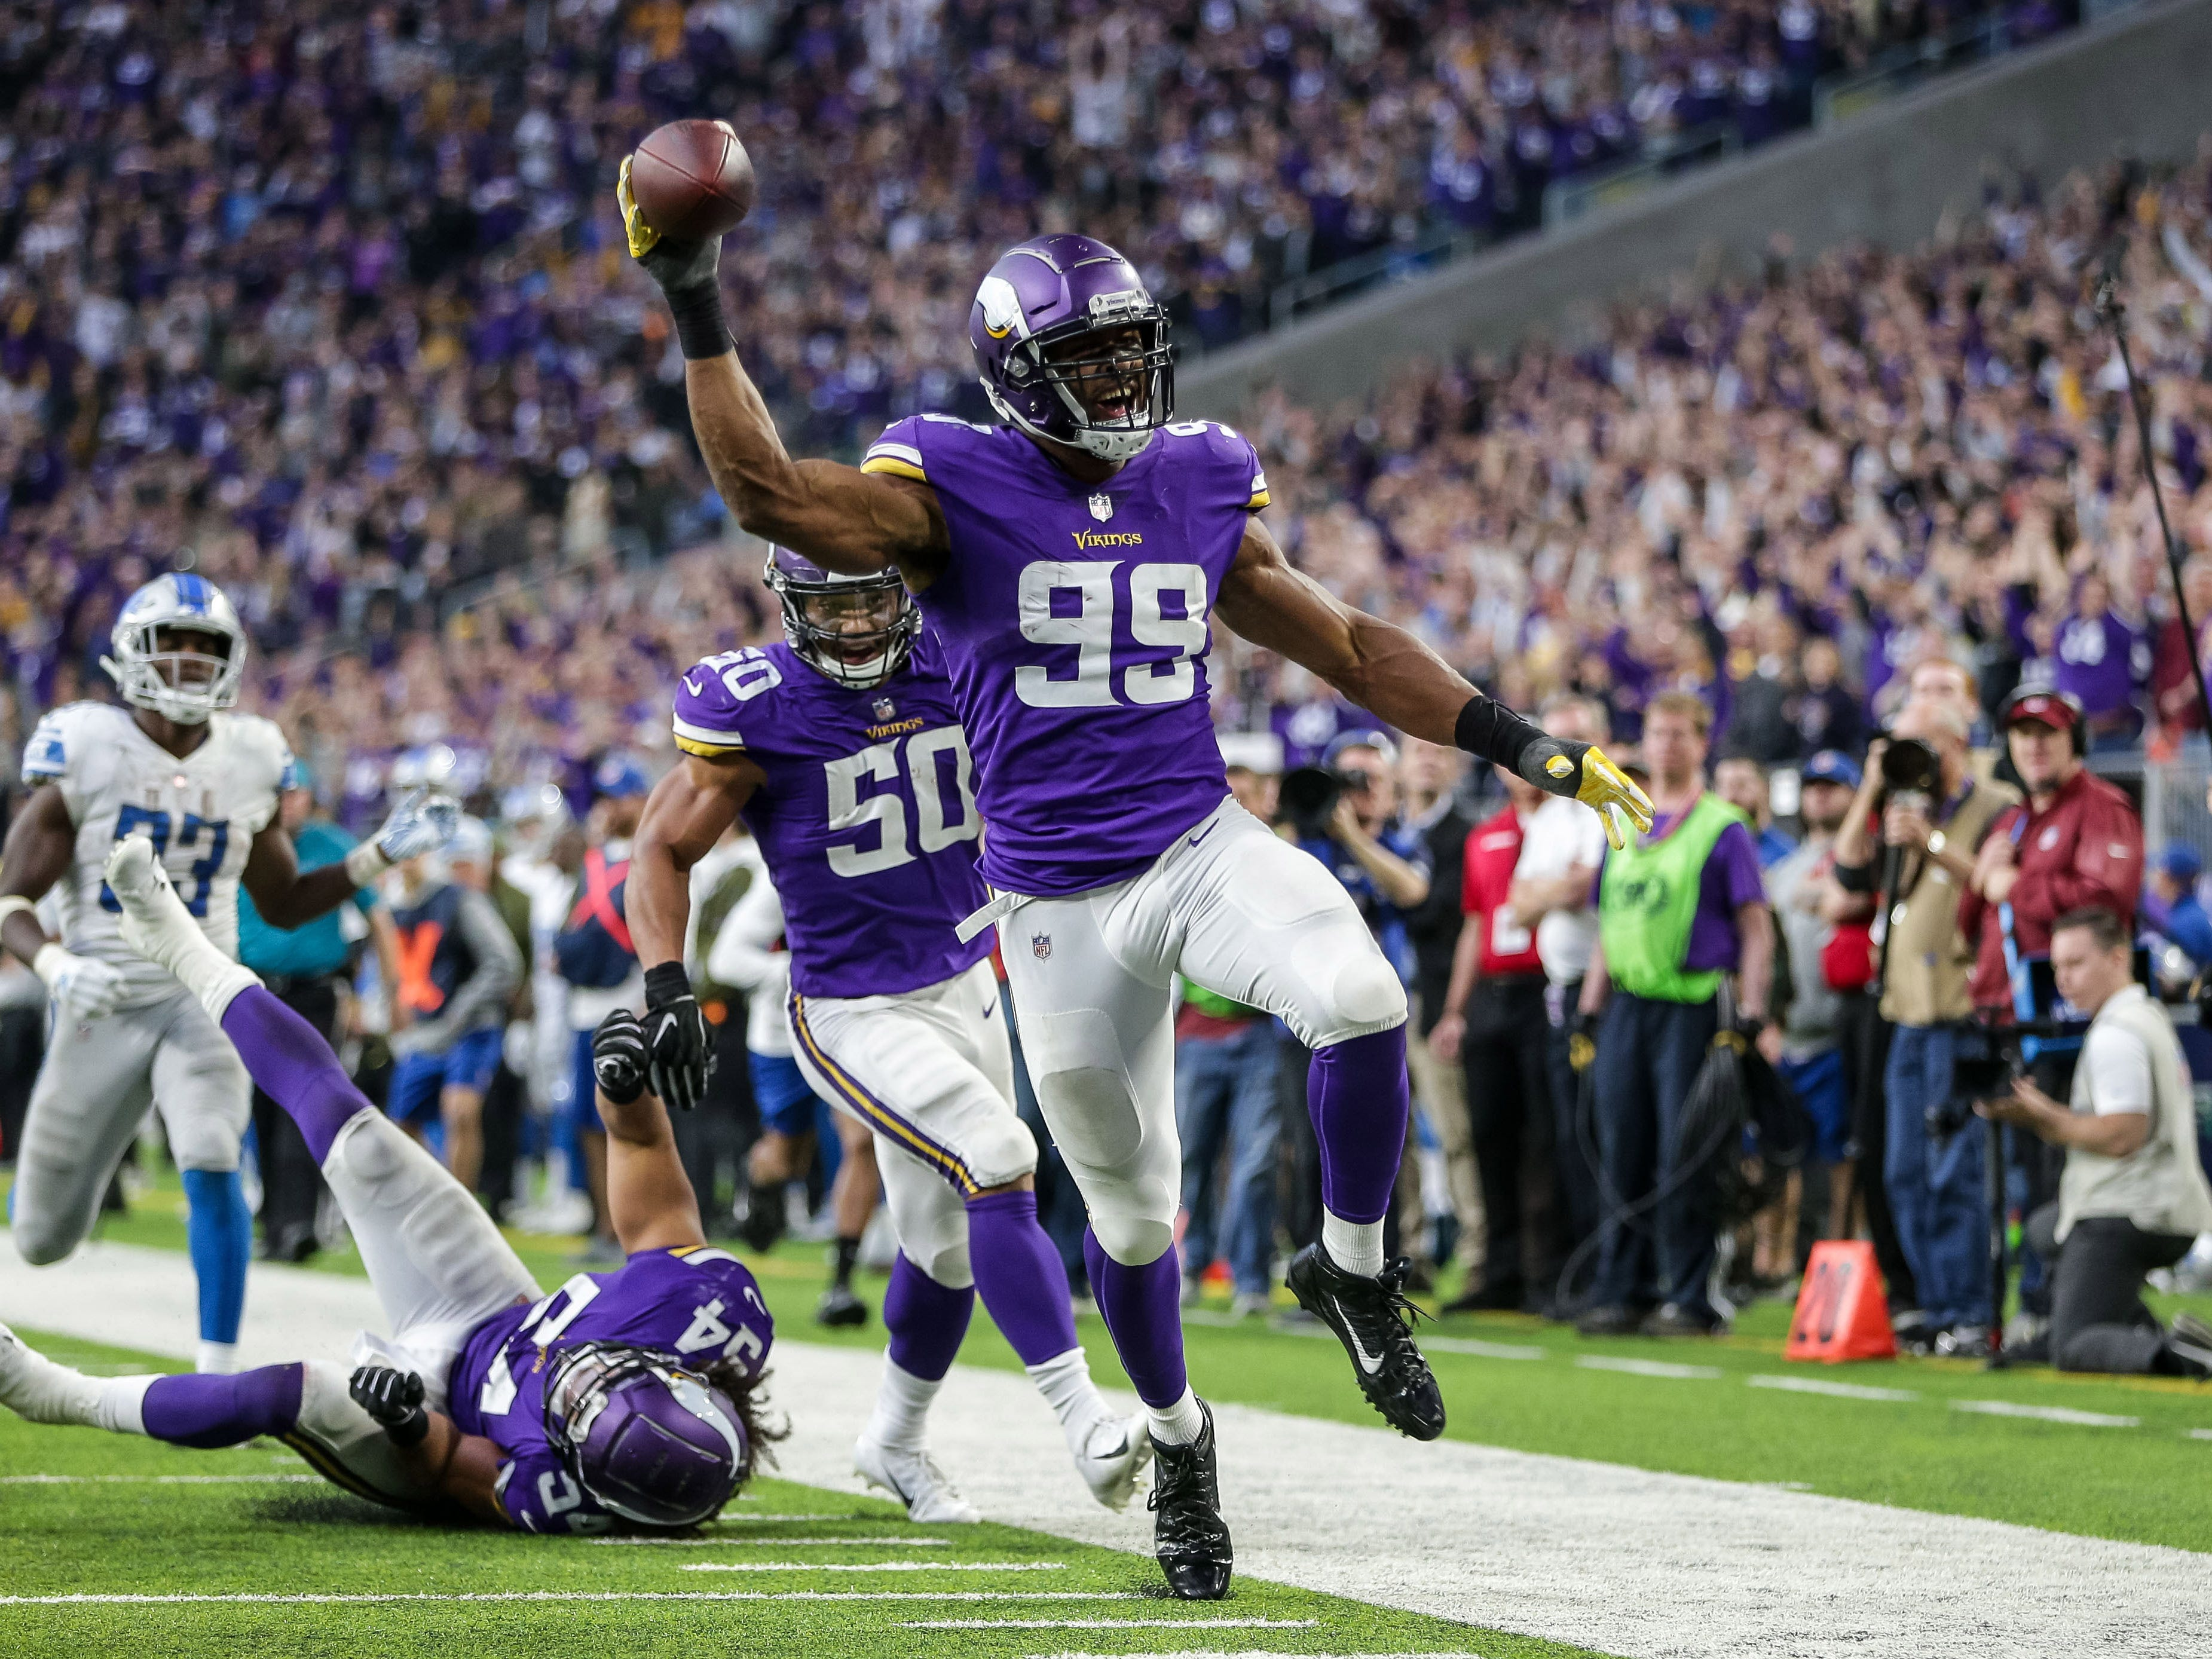 9. Vikings (5-3-1) | Last game: Defeated the Lions, 24-9 | Previous ranking: 9